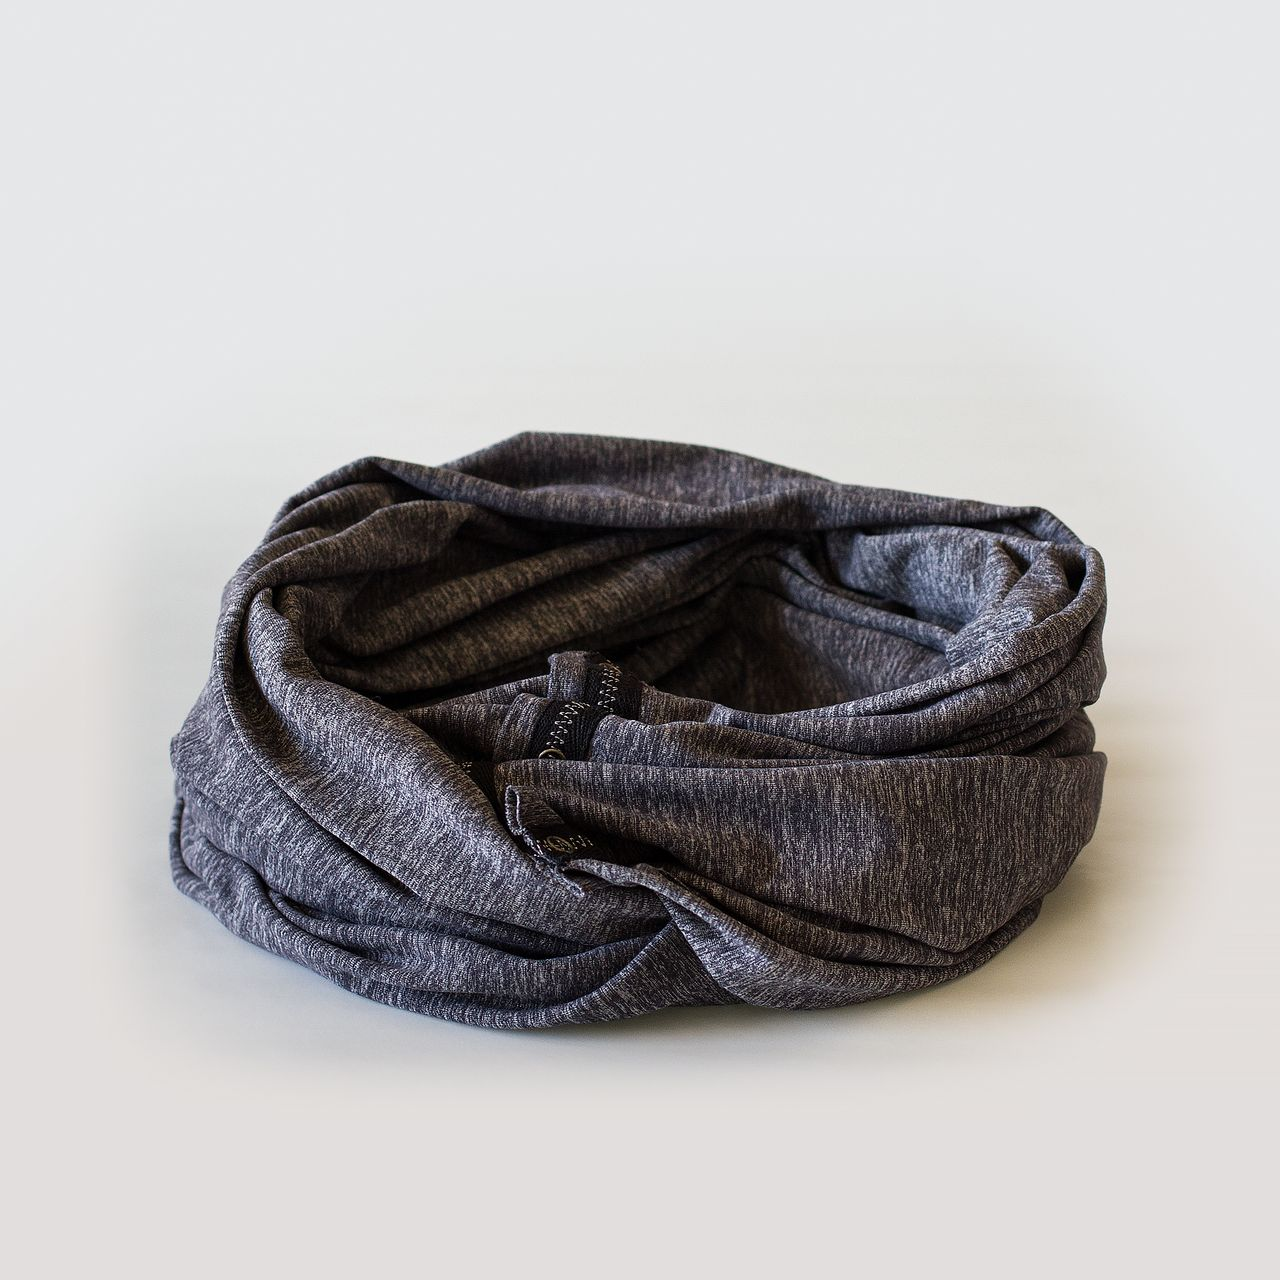 Lululemon Vinyasa Scarf - Static Coal (Second Release)